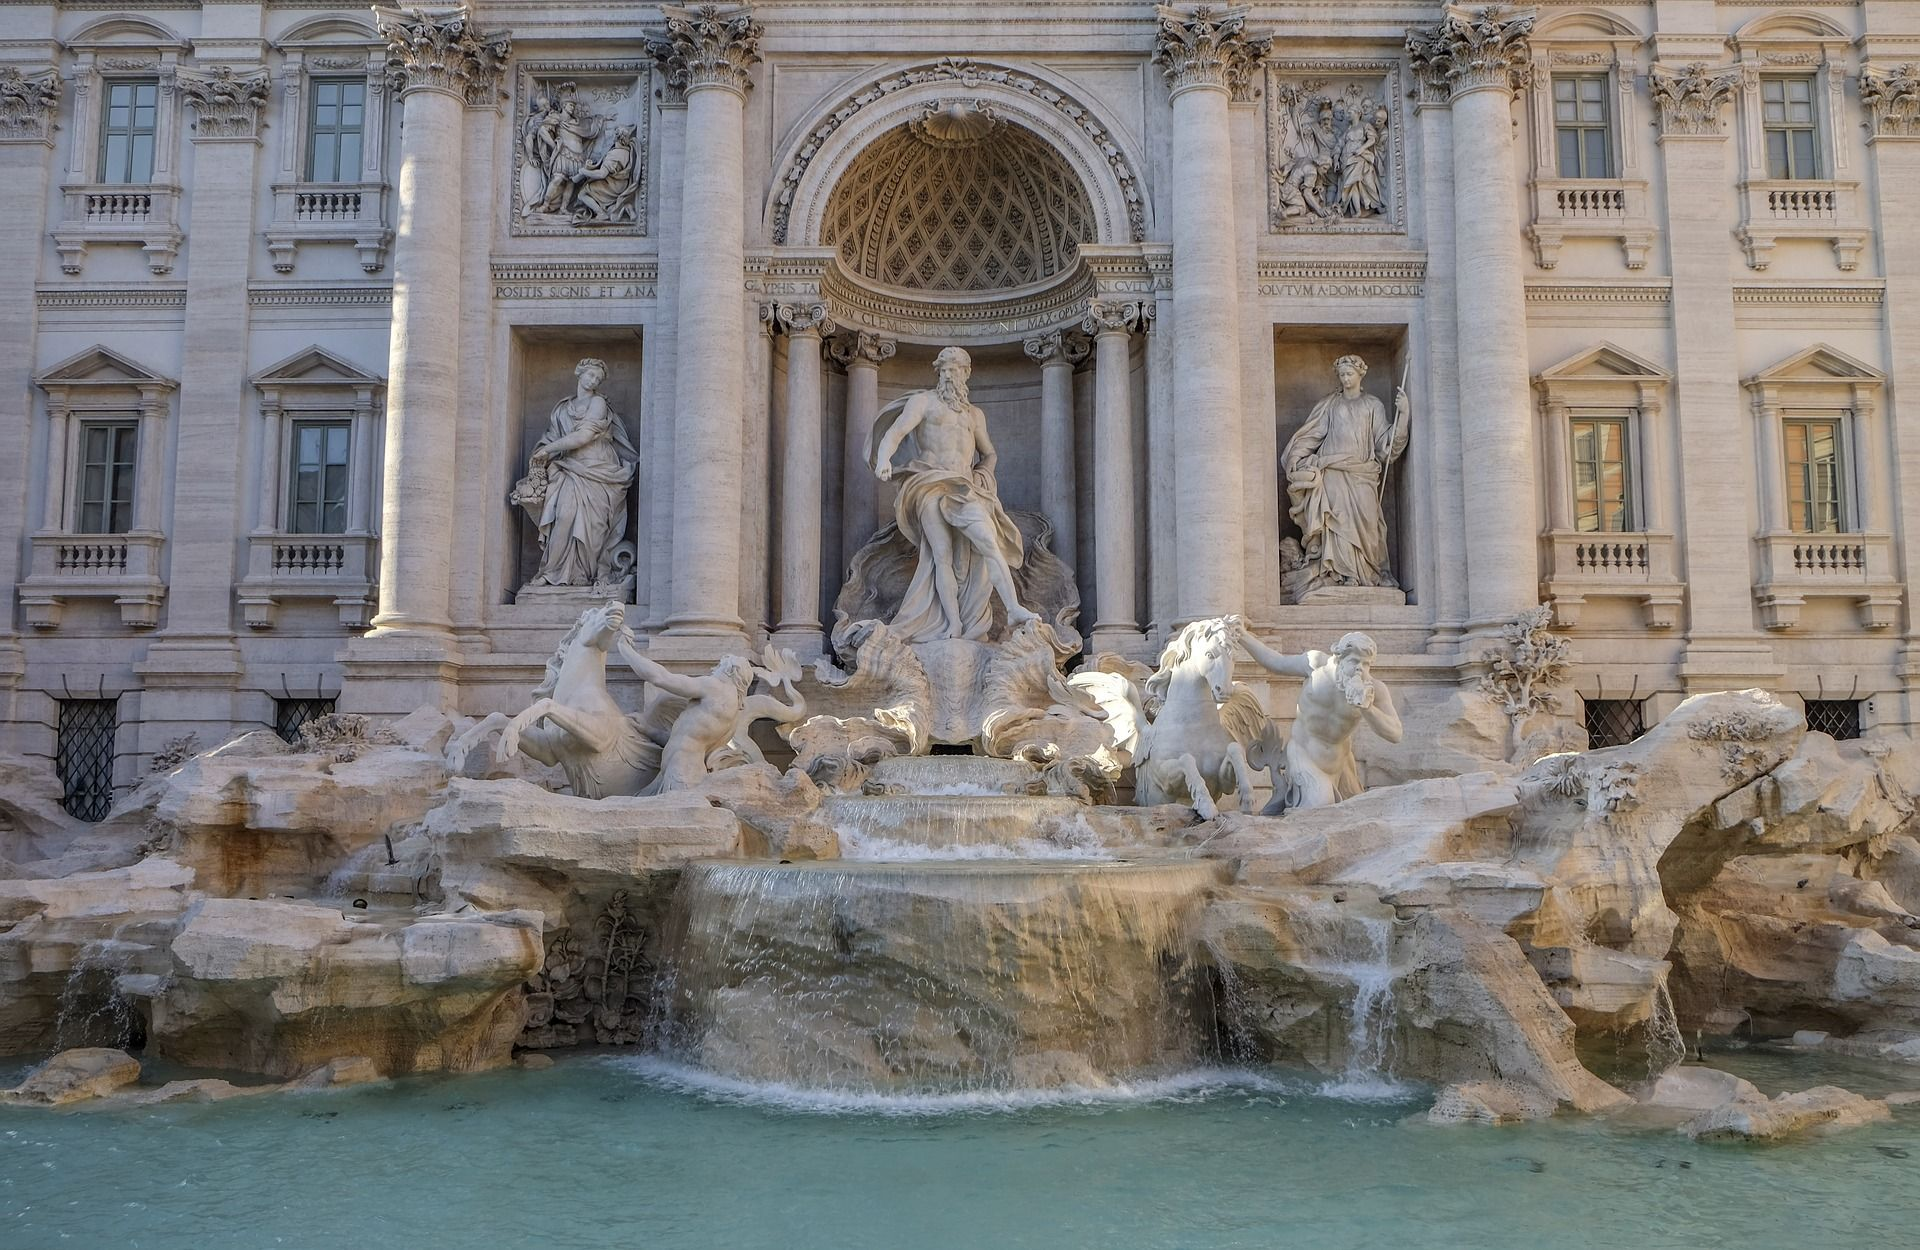 trevi-fountain-2796710_1920.jpg